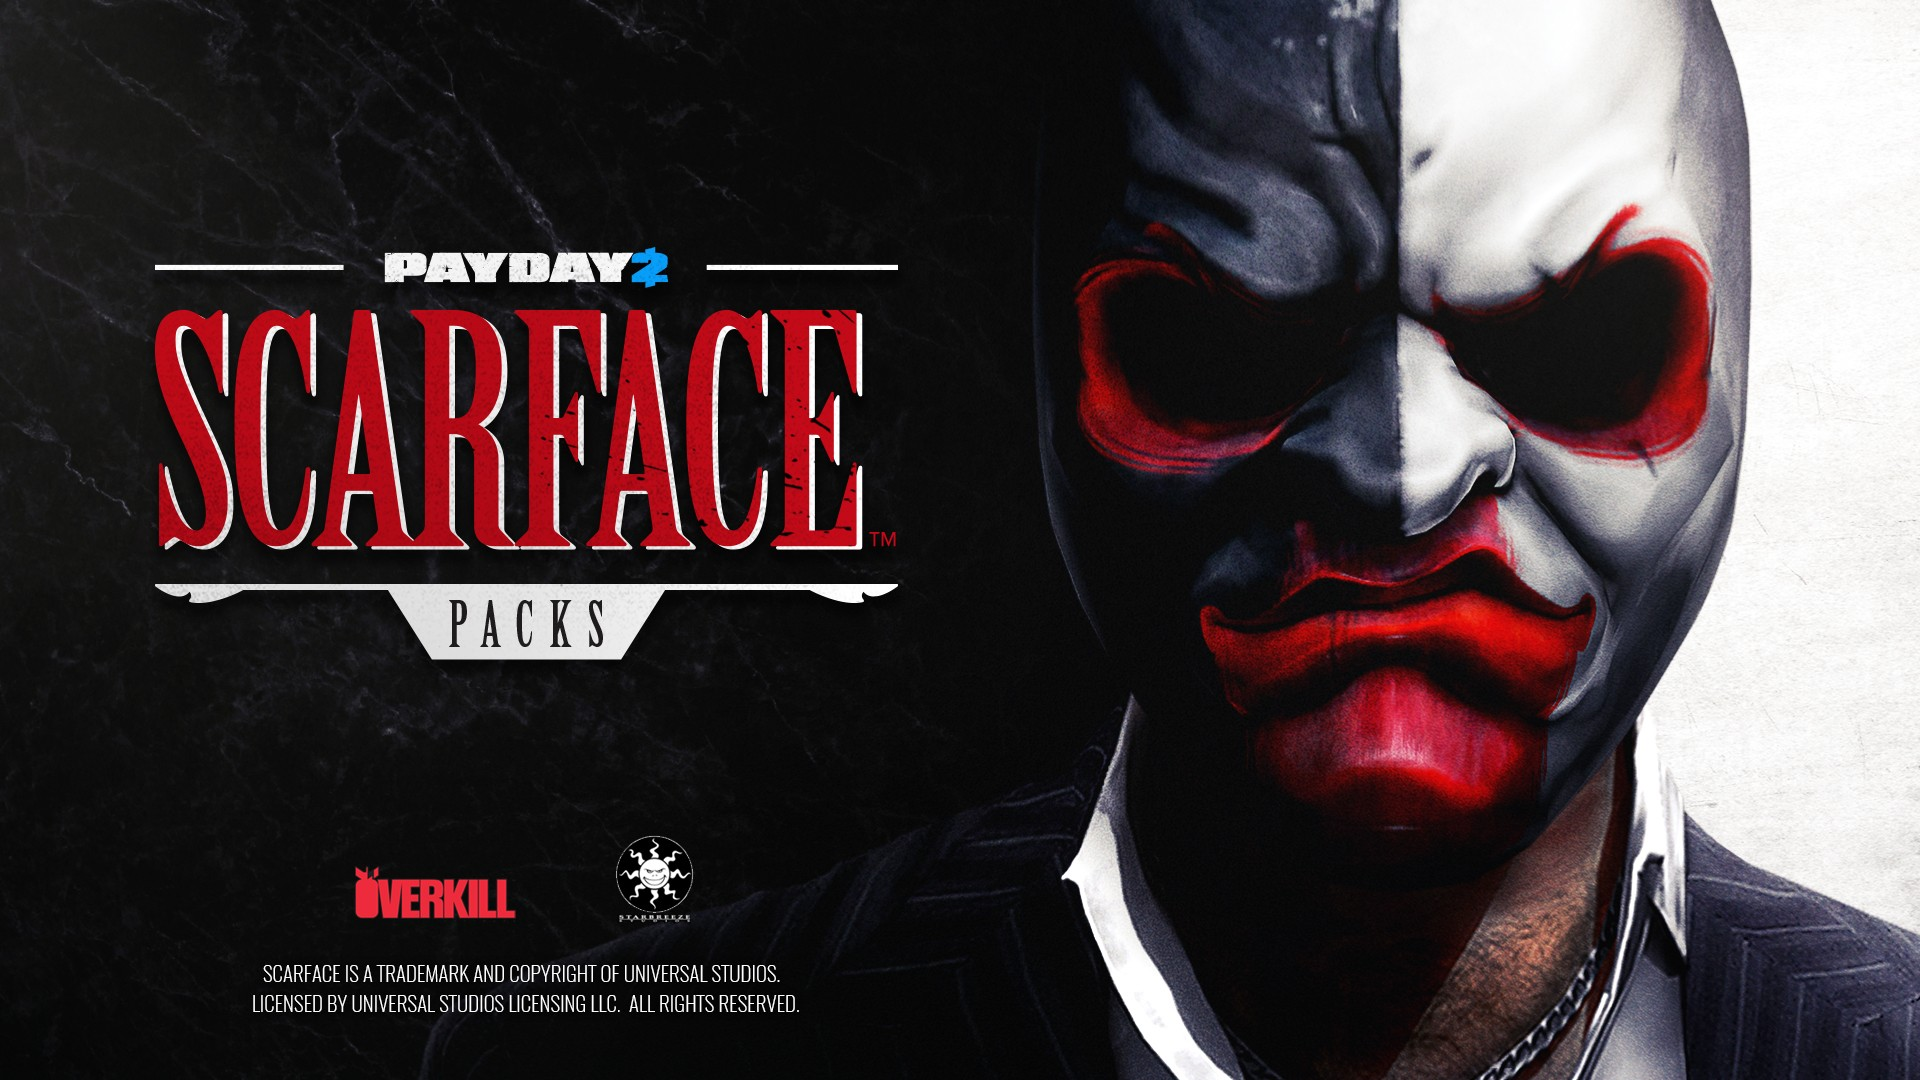 Say hello to our little friend – PAYDAY 2™ collaboration with NBCUniversal Brand Development for Scarface™ themed Character Pack and Heist